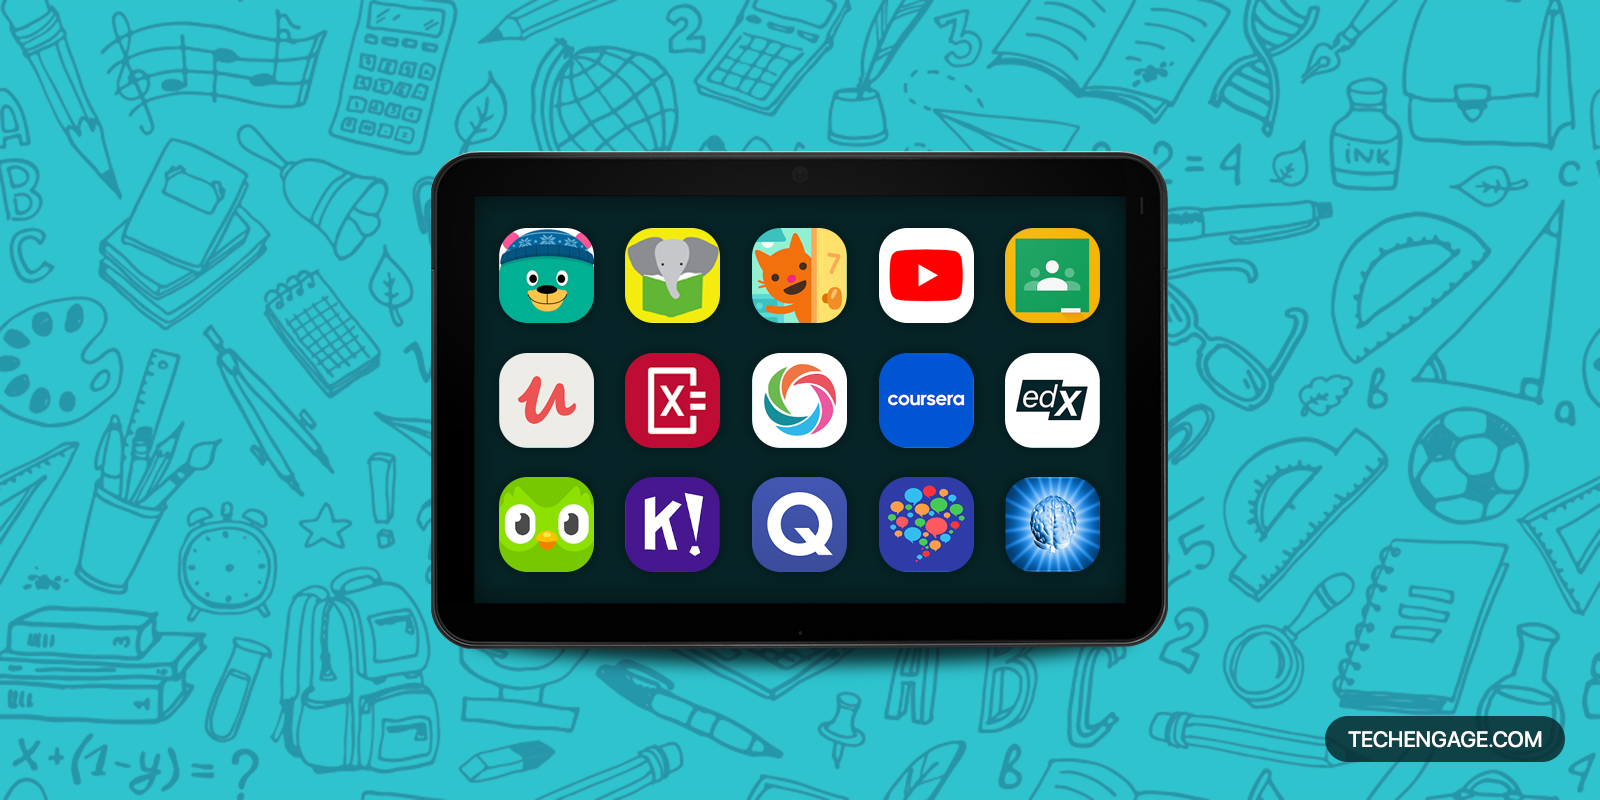 14 best educational apps of 2021